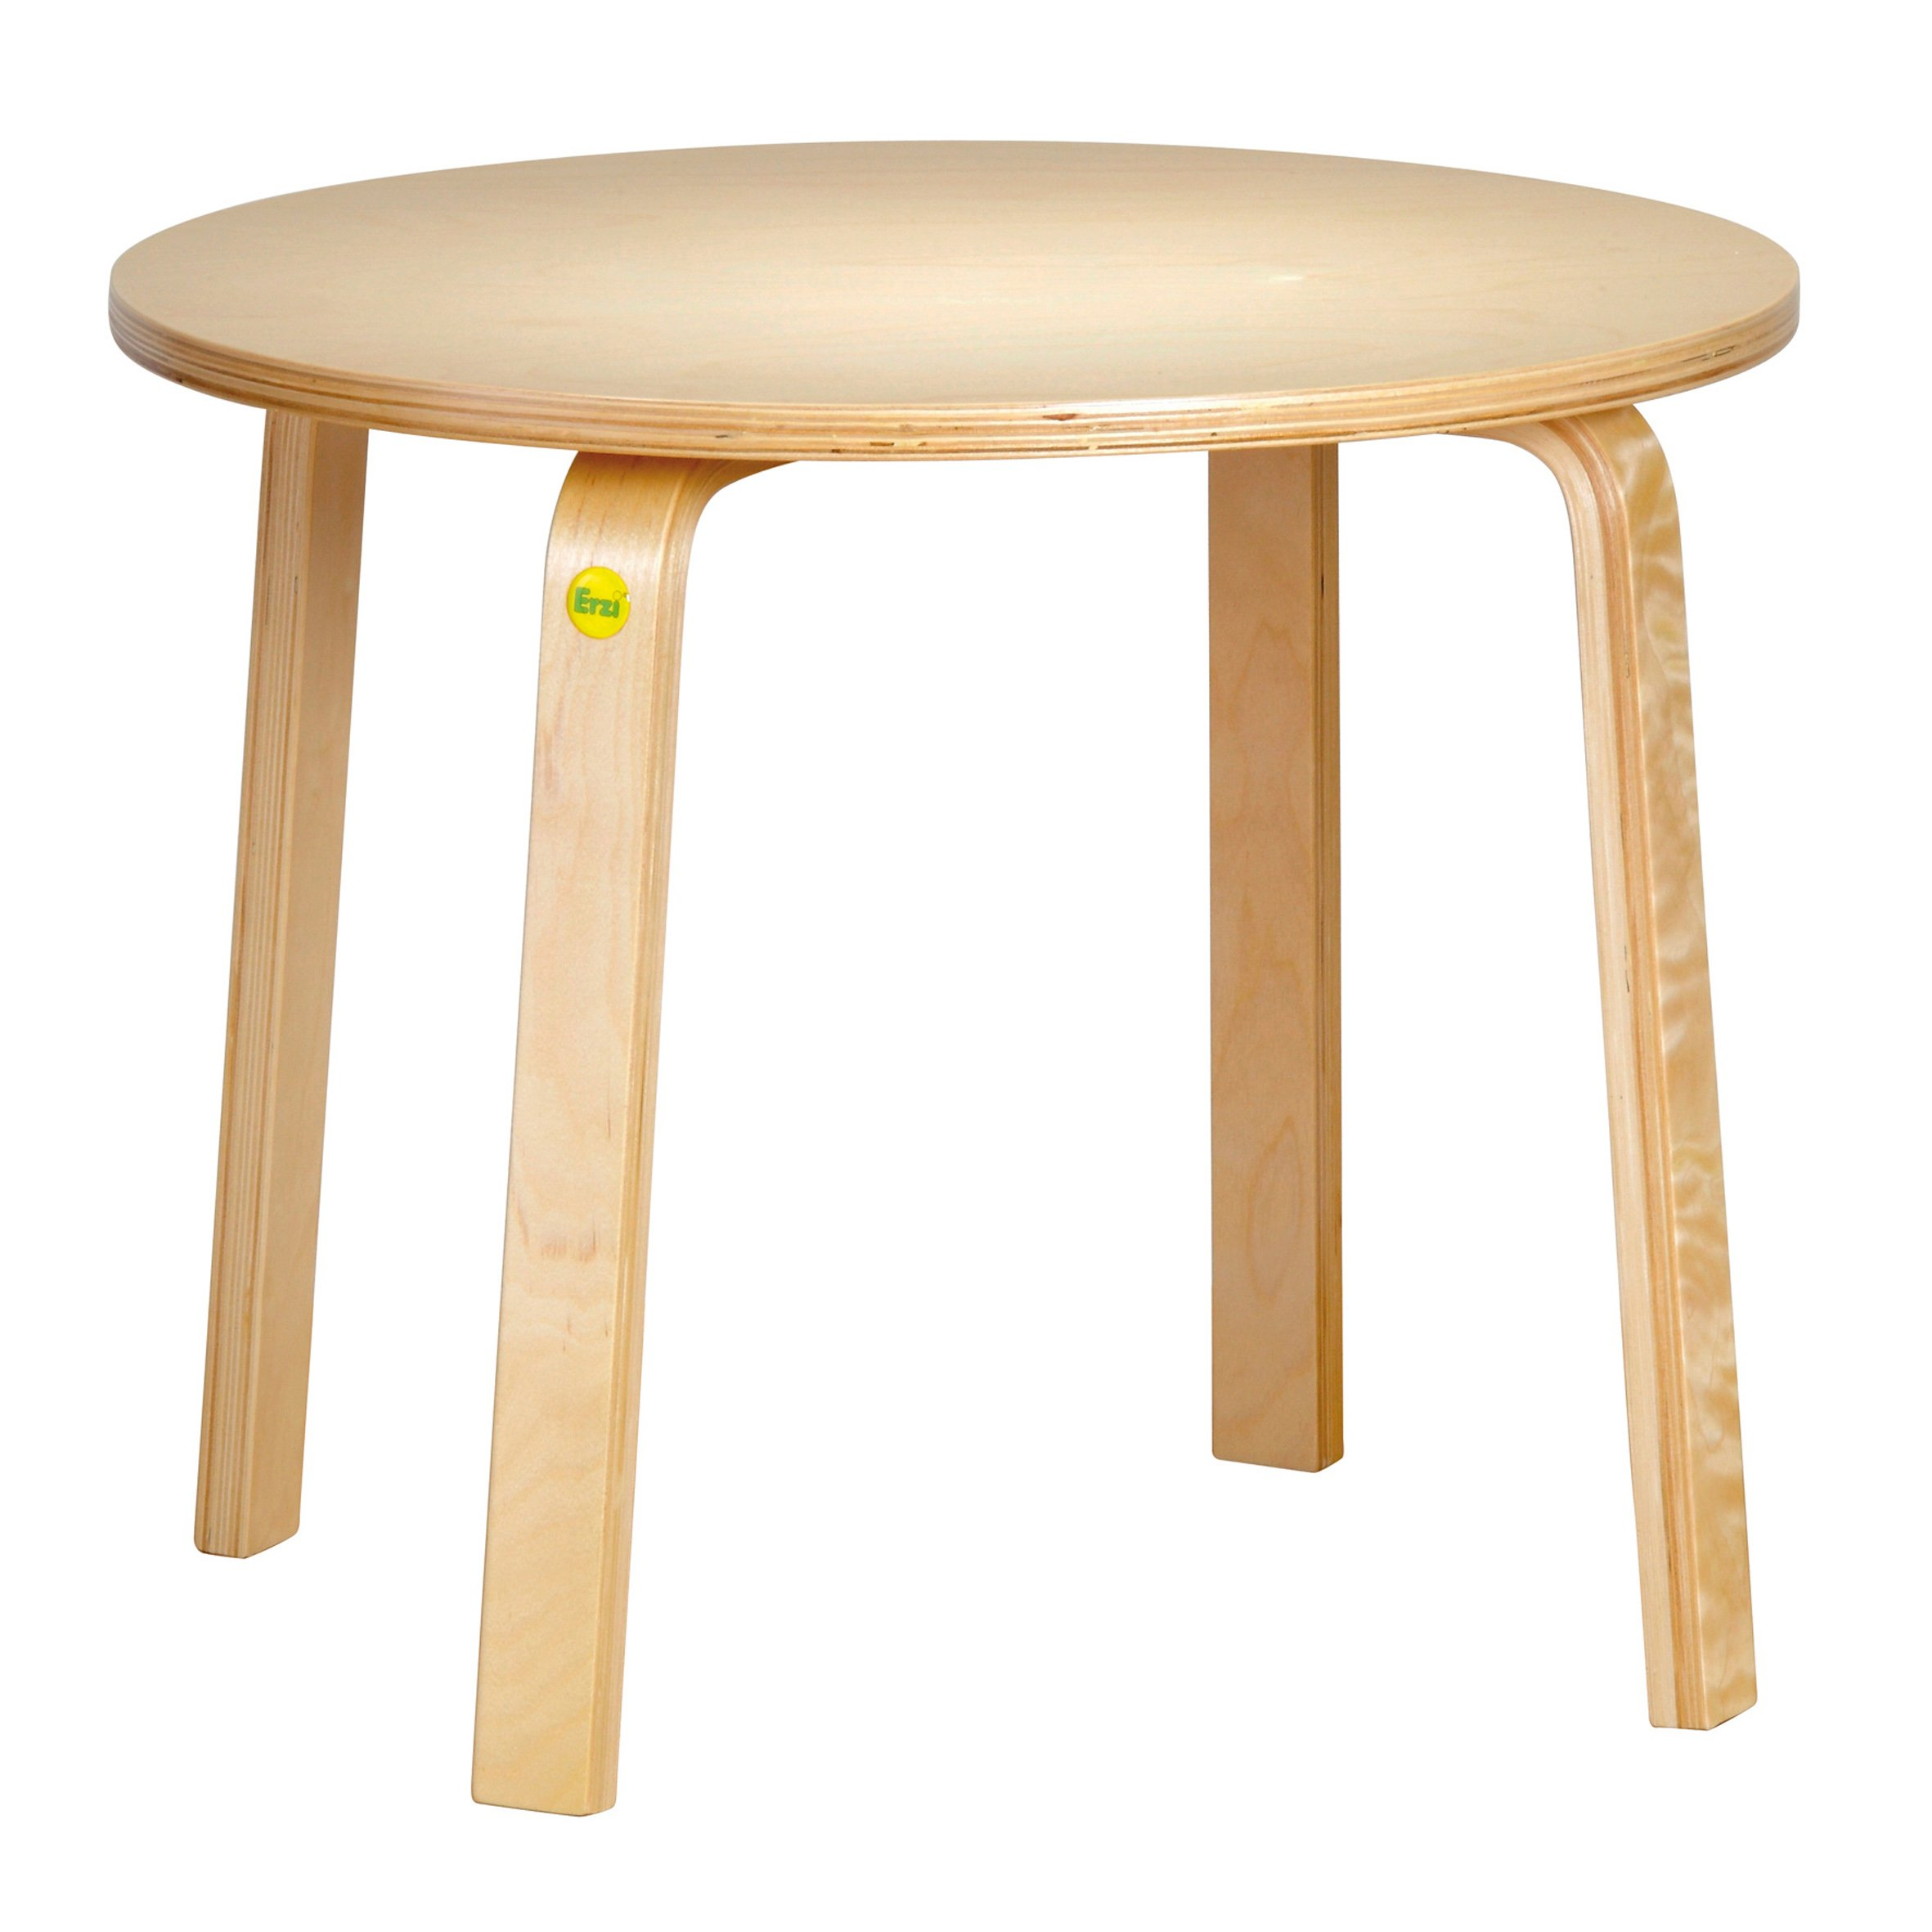 Erzi 60 x 46 cm Molded Wood Table 46 German Wooden Toy